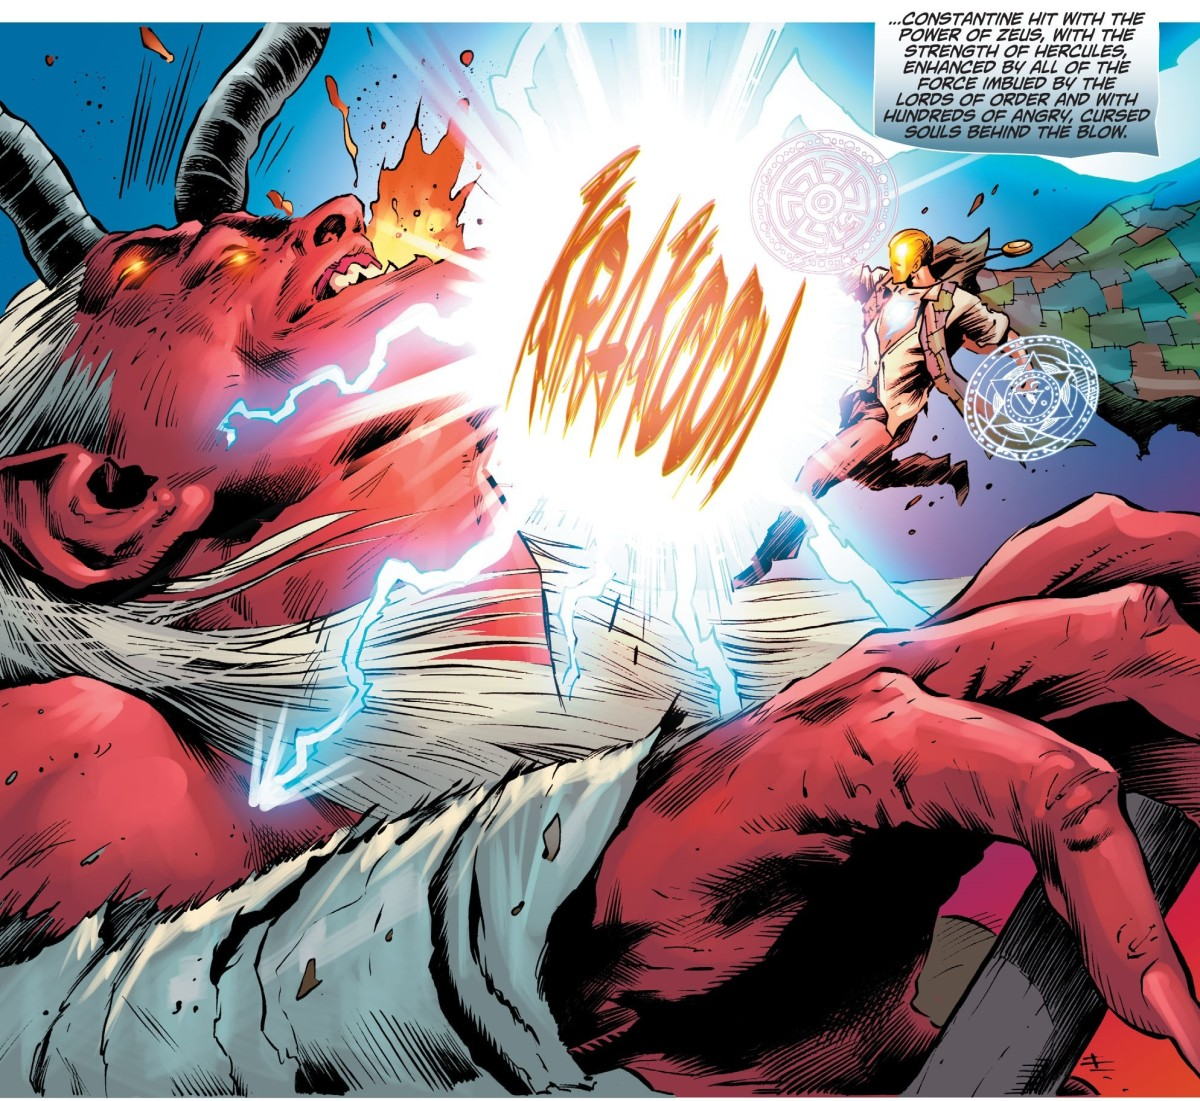 magical-items-collected-by-john-constantine-to-kill-trigon